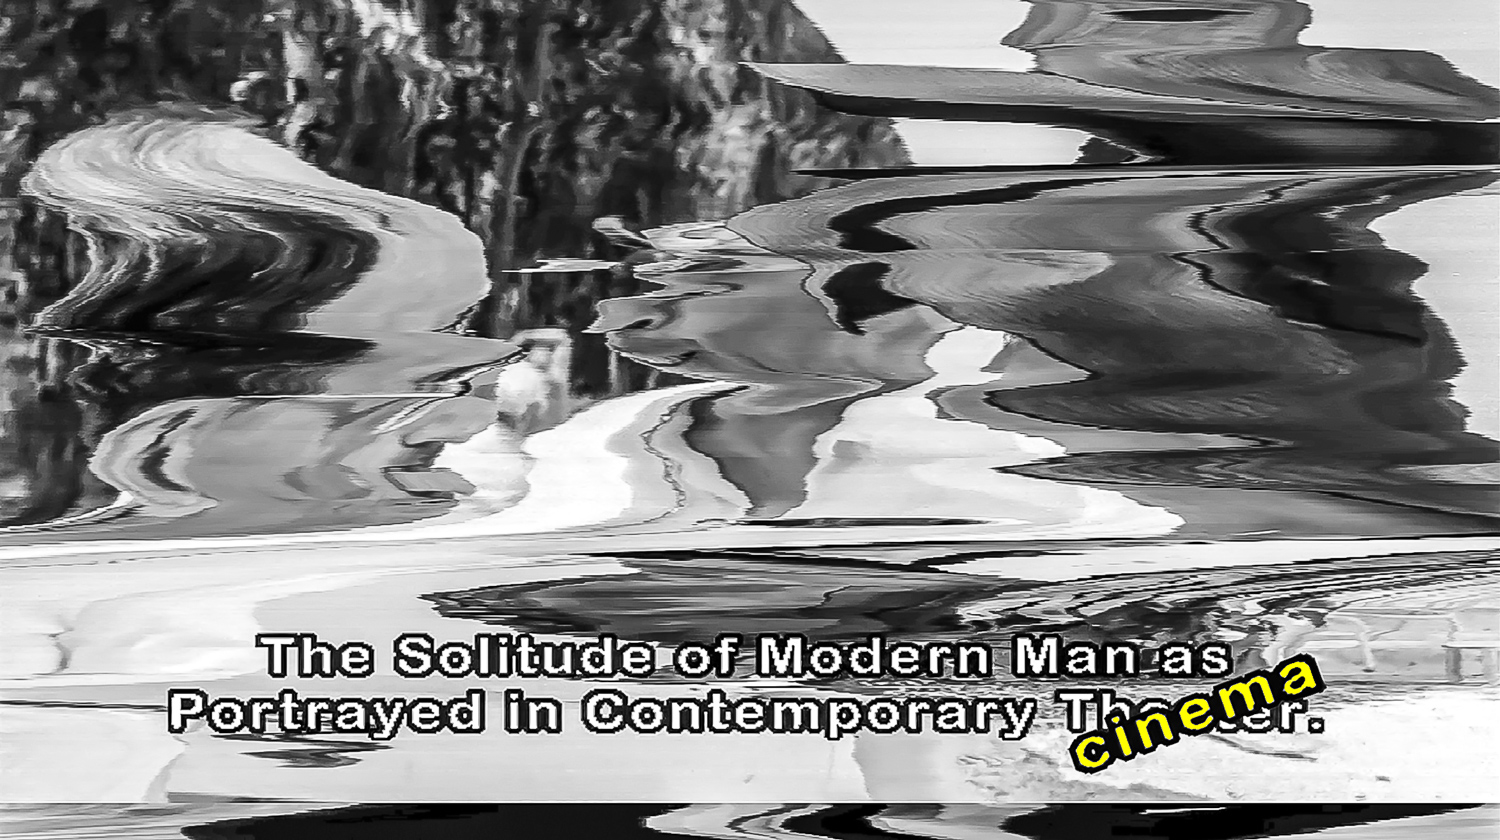 F85 22220 The Solitude of Modern Man 0122 Cover.jpg